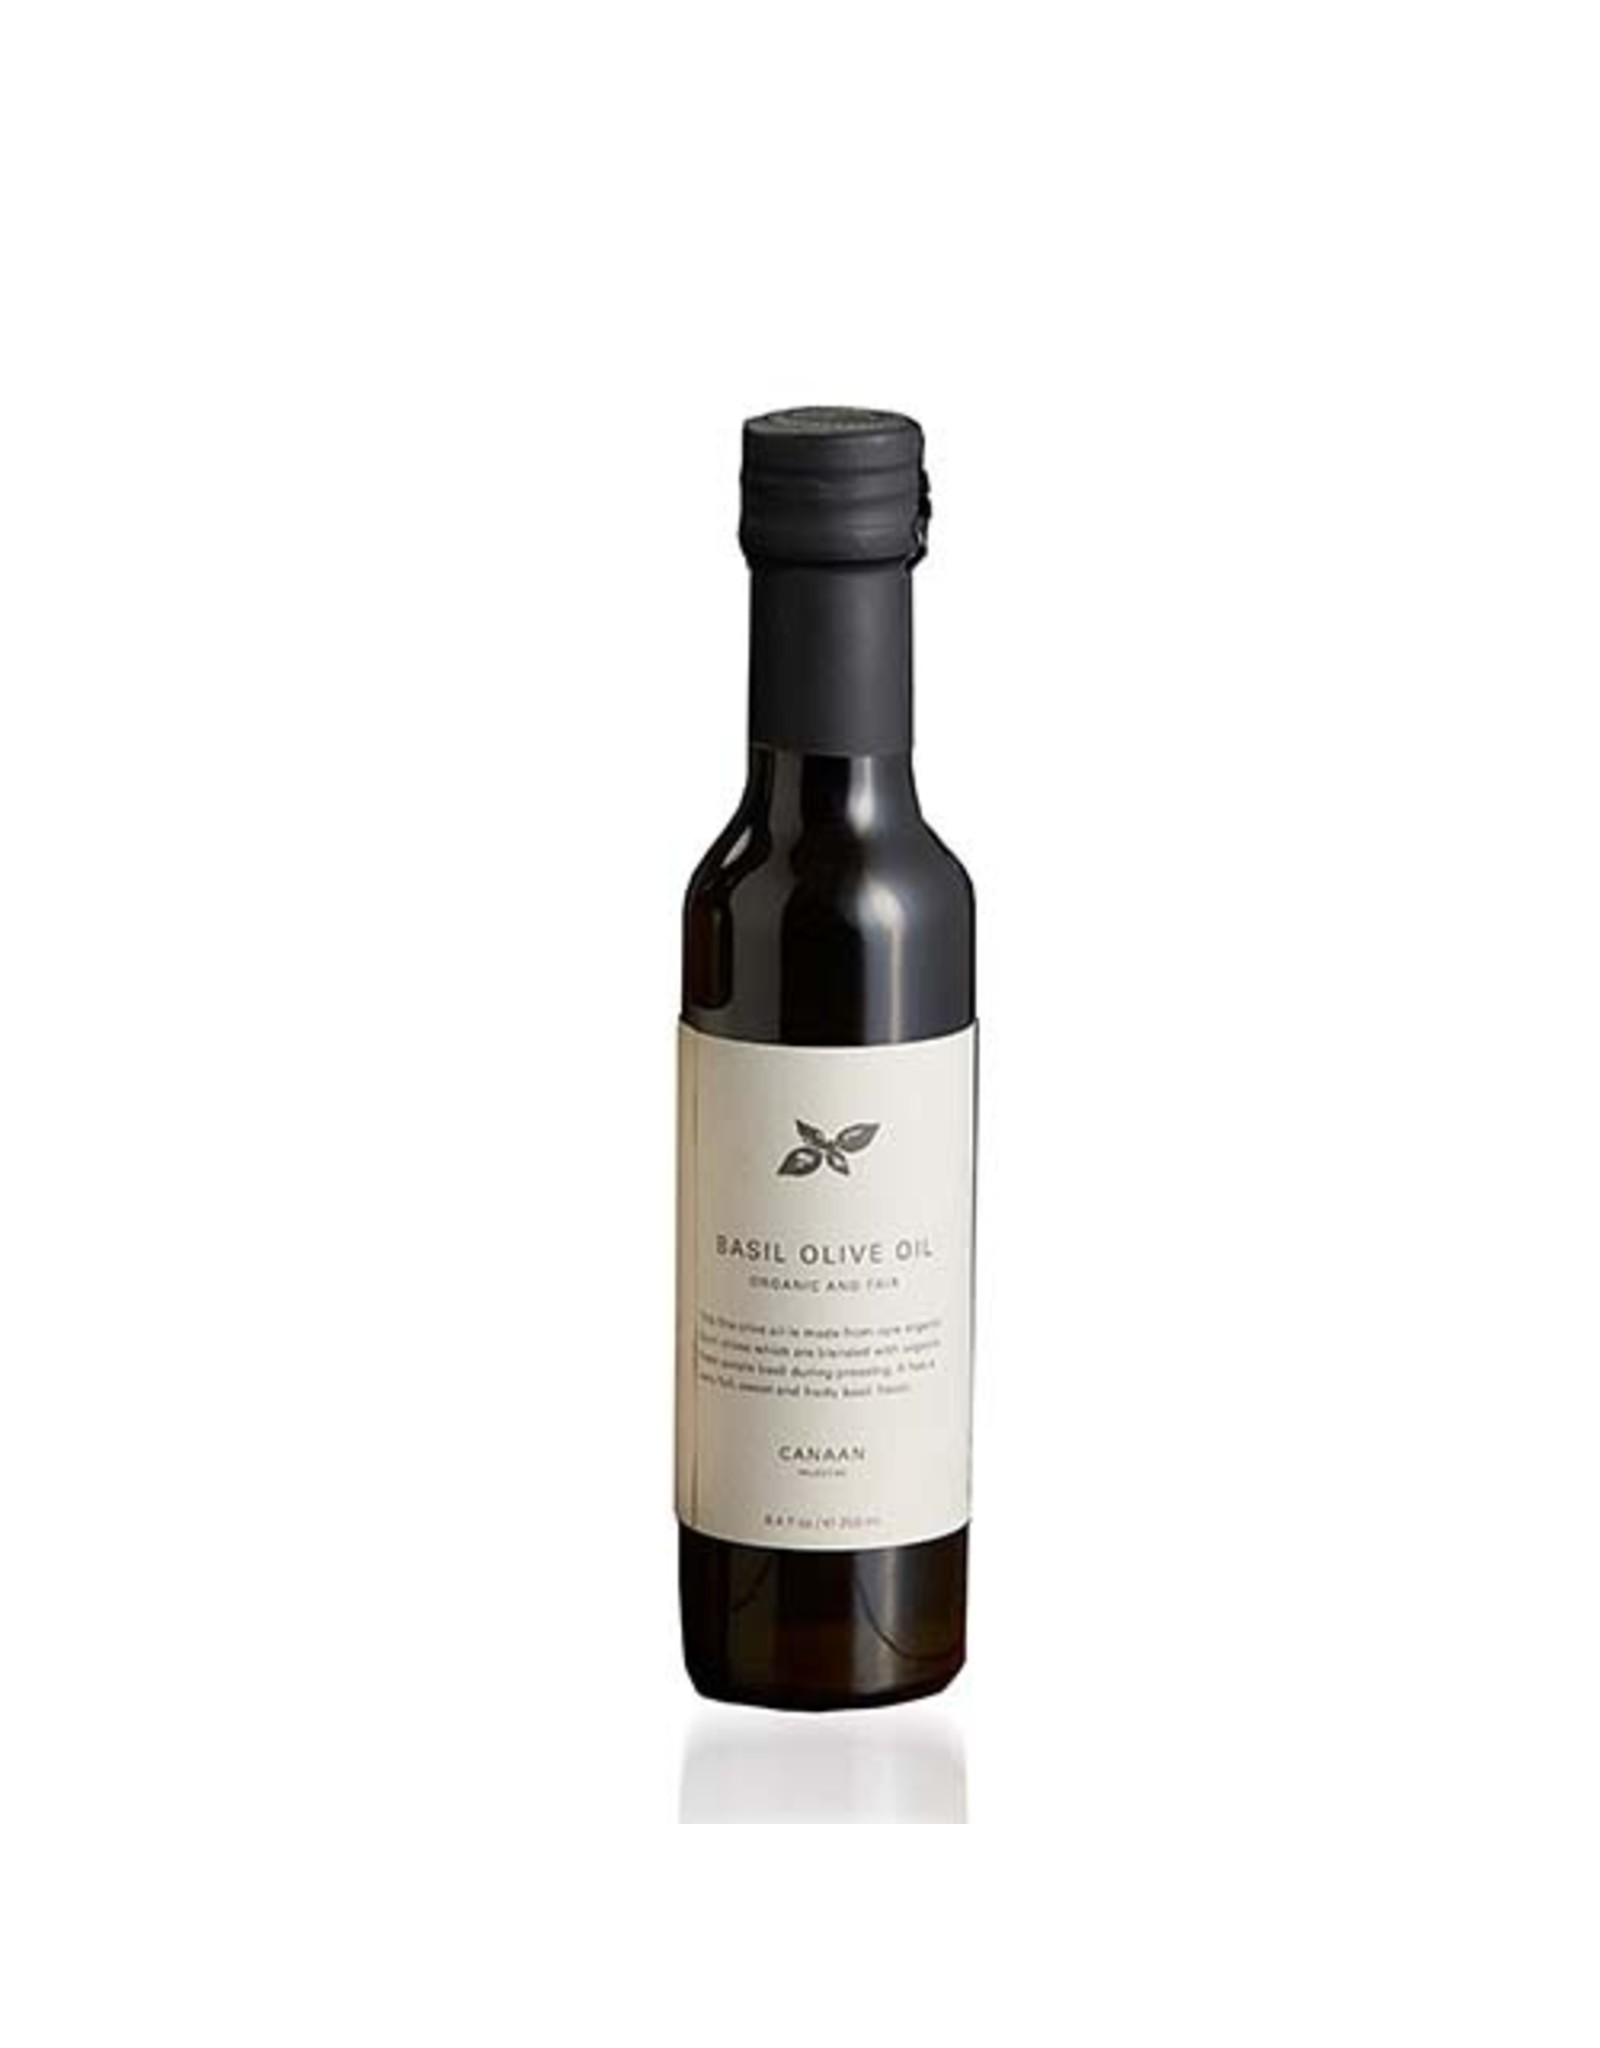 Canaan Infused Olive Oil  Basil, West Bank